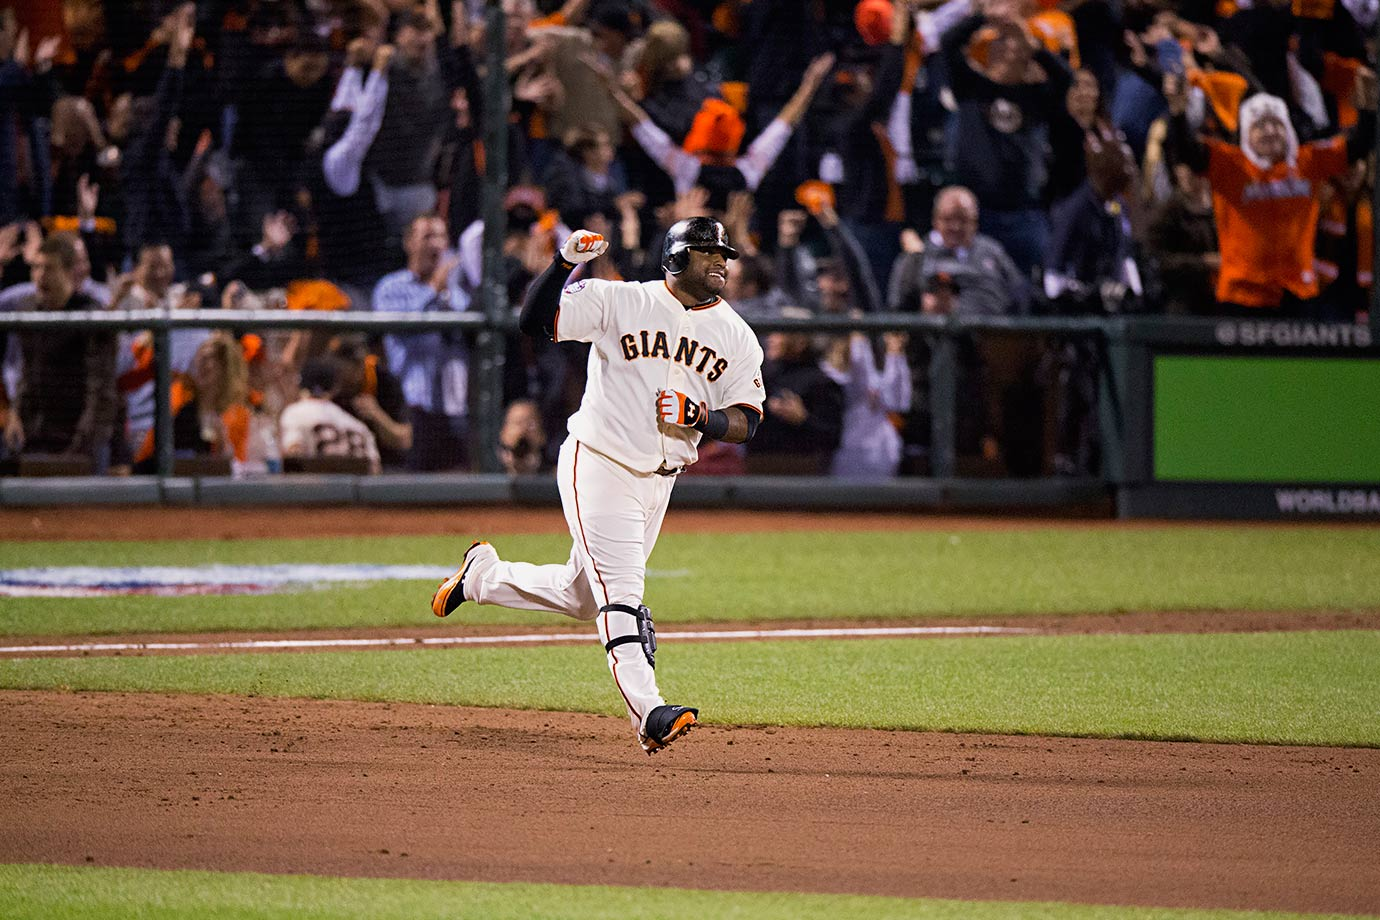 Pablo Sandoval penned a chapter in baseball history when he became the first player to hit a home run in his first three plate appearances of a World Series game. The Giants slugger also joined Albert Pujols, Reggie Jackson and Babe Ruth as only the fourth player in history to go yard three times in a single World Series game.